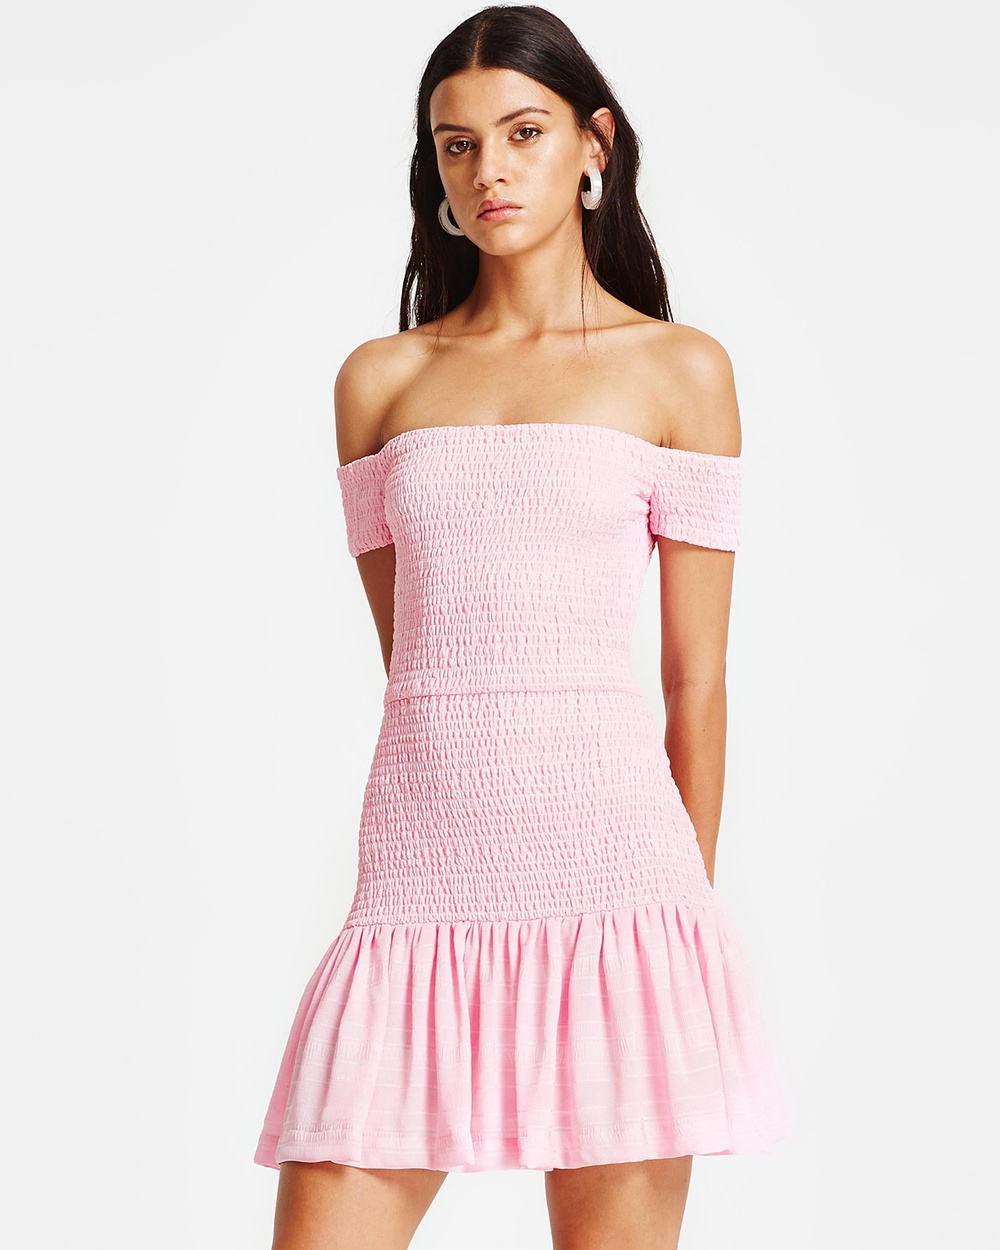 Vestire Cara Dress Dresses Iced Pink Cara Dress